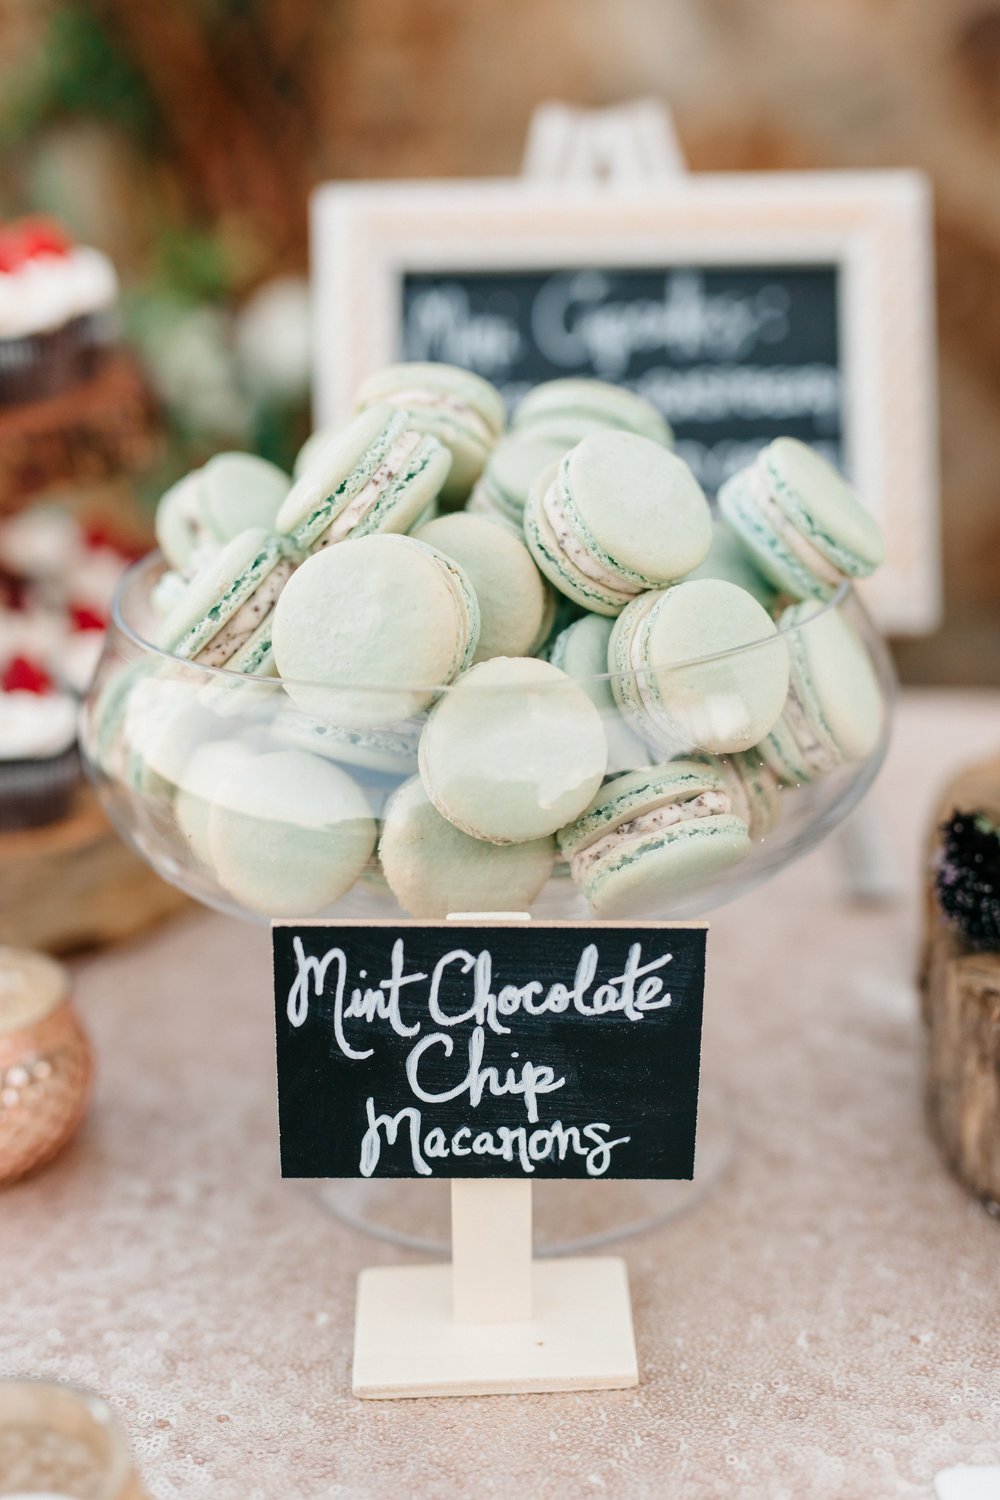 Mint Chocolate Chip Macarons, Wedding Reception Sweets